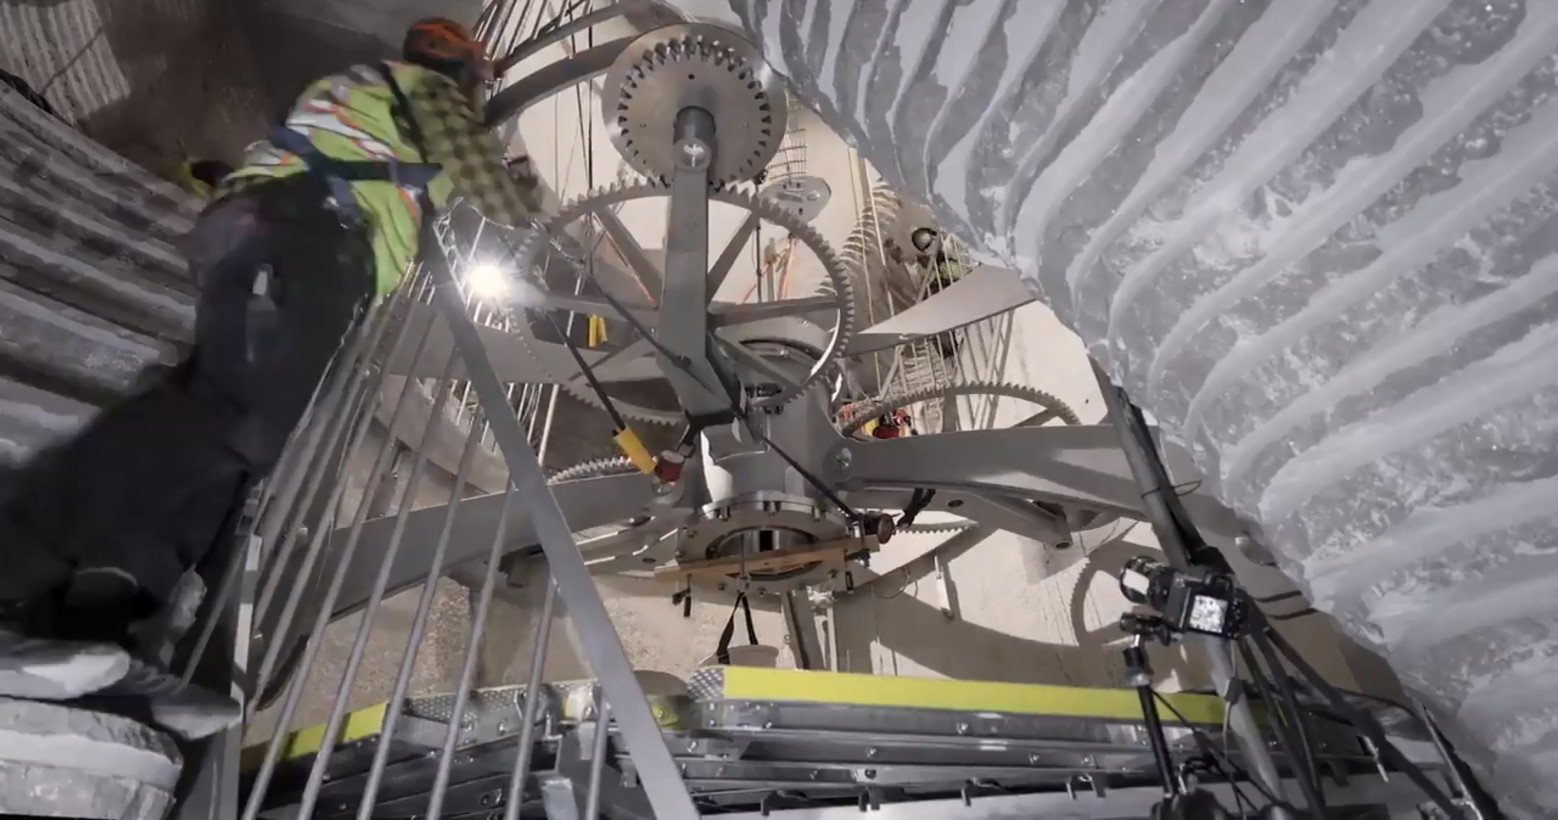 A $42 million '10,000 year clock' is being installed on Jeff Bezos' property